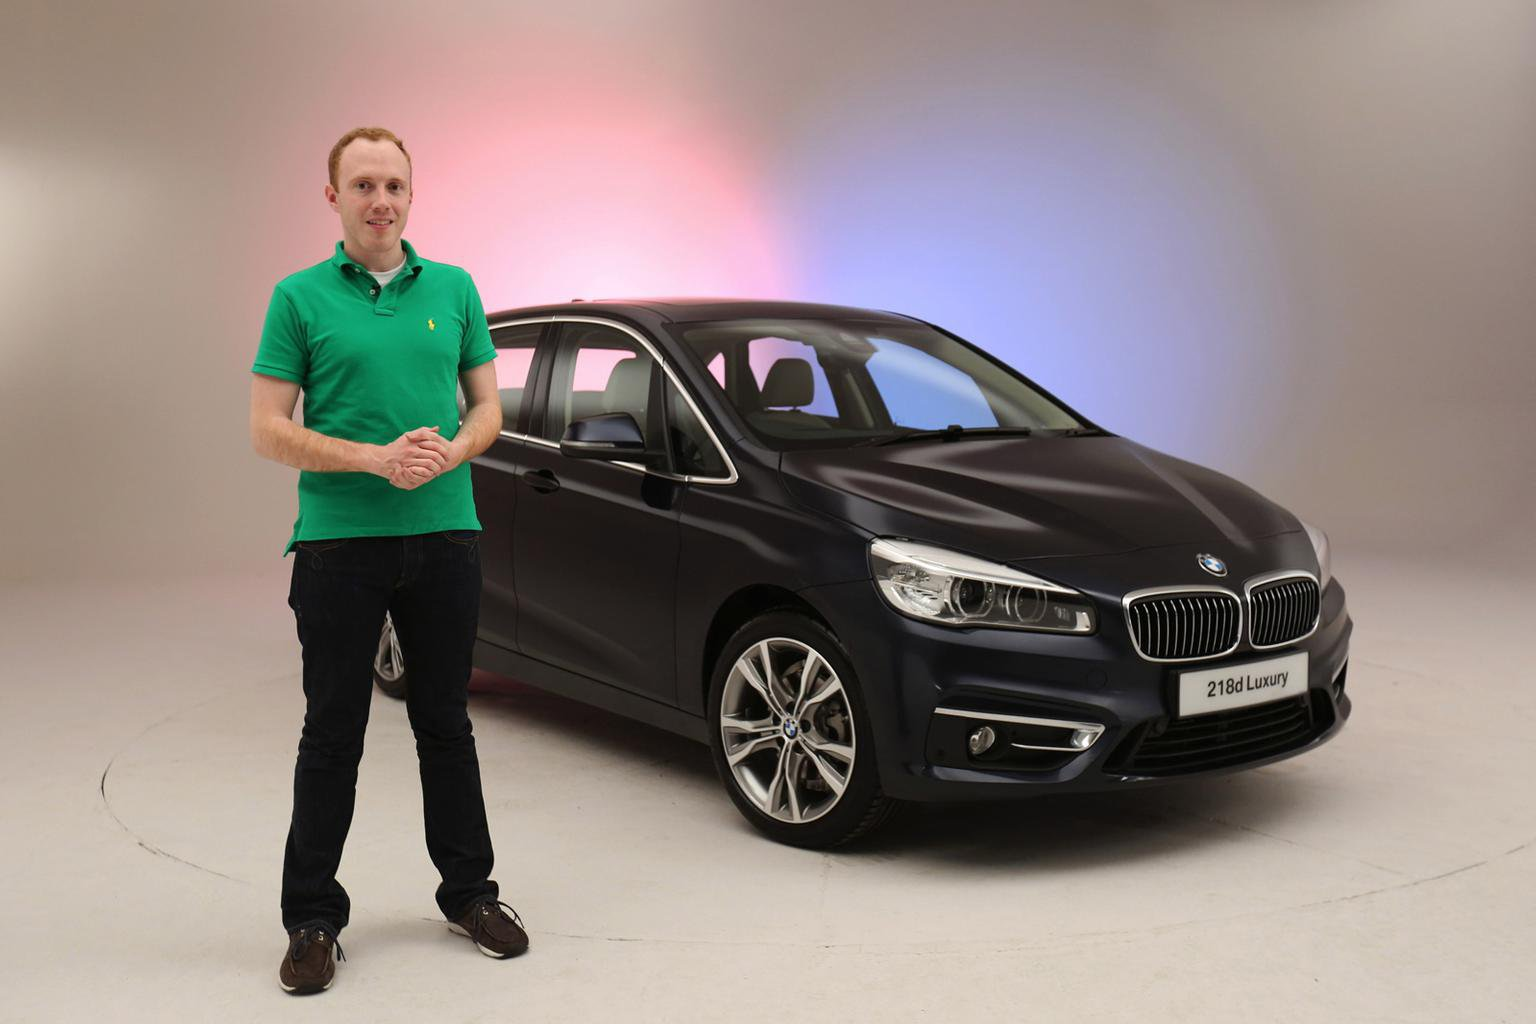 BMW 2 Series Active Tourer reviewed by What Car? readers